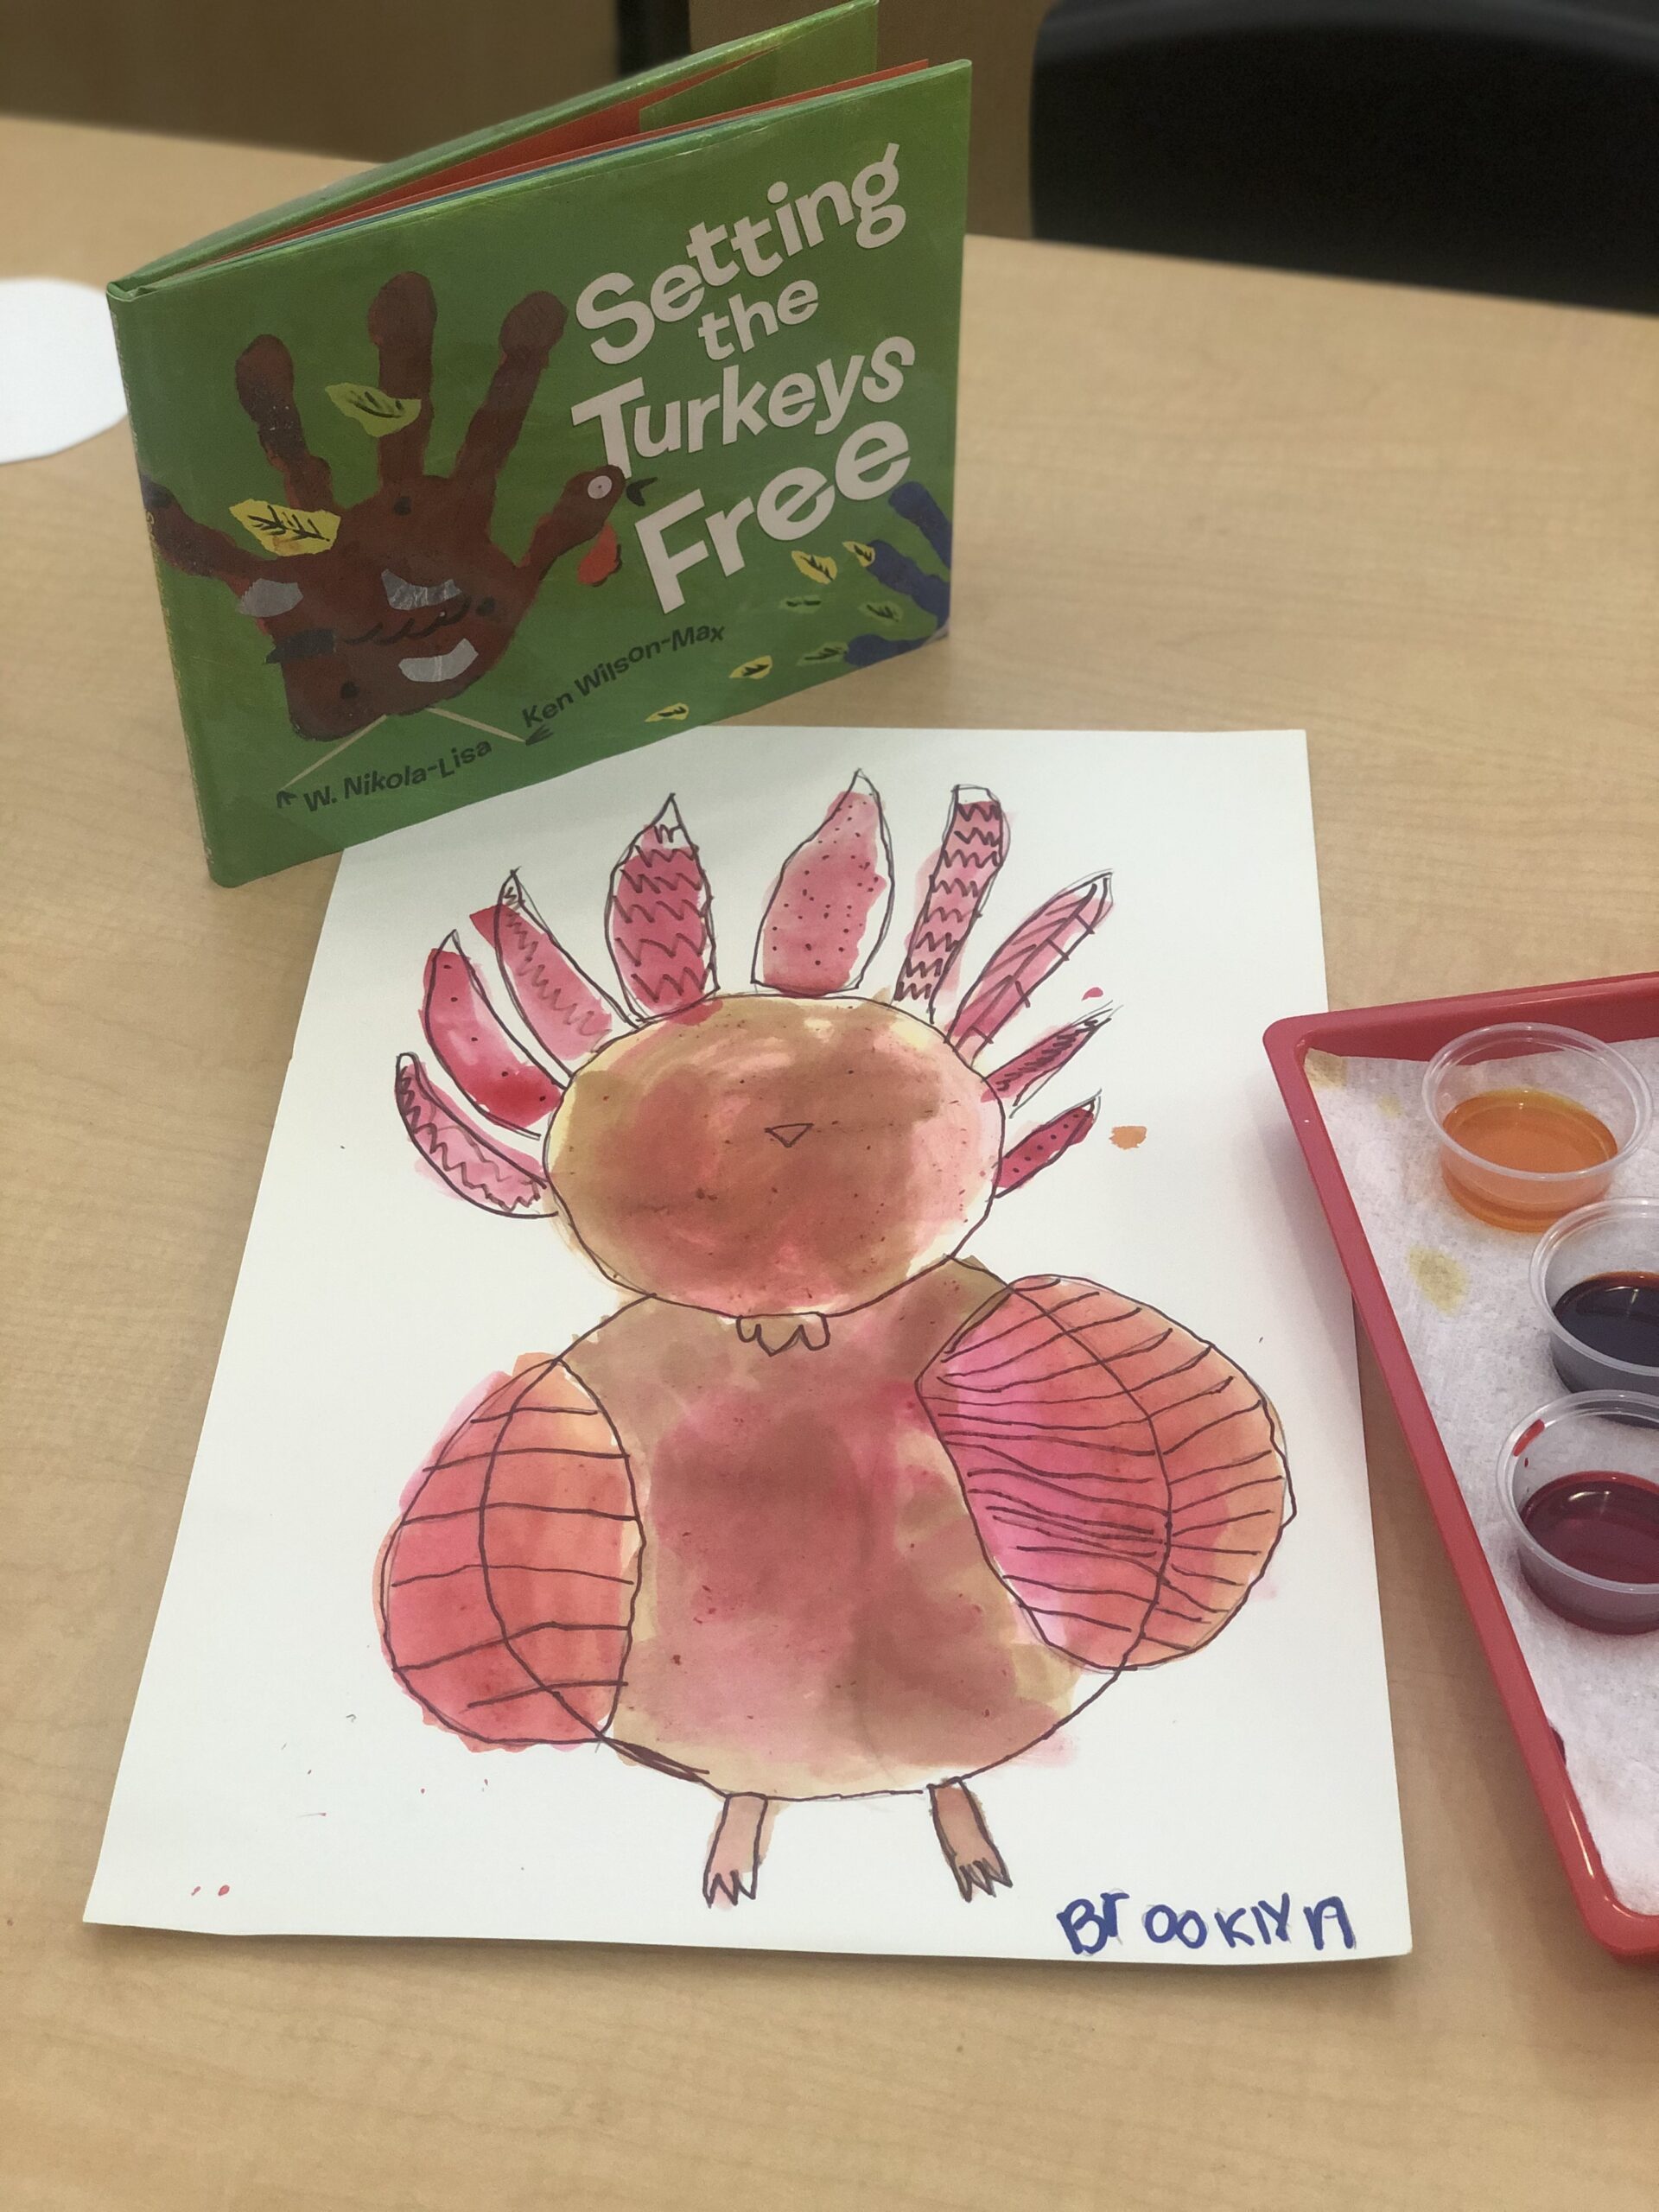 It's Autumn and right now our daylight is shorter, it's colder outside, and the leaves are changing colors.  Chlorophyll makes leaves green. The lack of light outside causes the leaves to change to Red, Orange, Yellow, & eventually brown.  We used these colors in creating our Watercolor Turkeys.  First portion was Directed Drawing and the second half allowed for them to create their one-of-a-kind Wild Turkey. We discussed different types of lines in the drawing of their unique feathers.